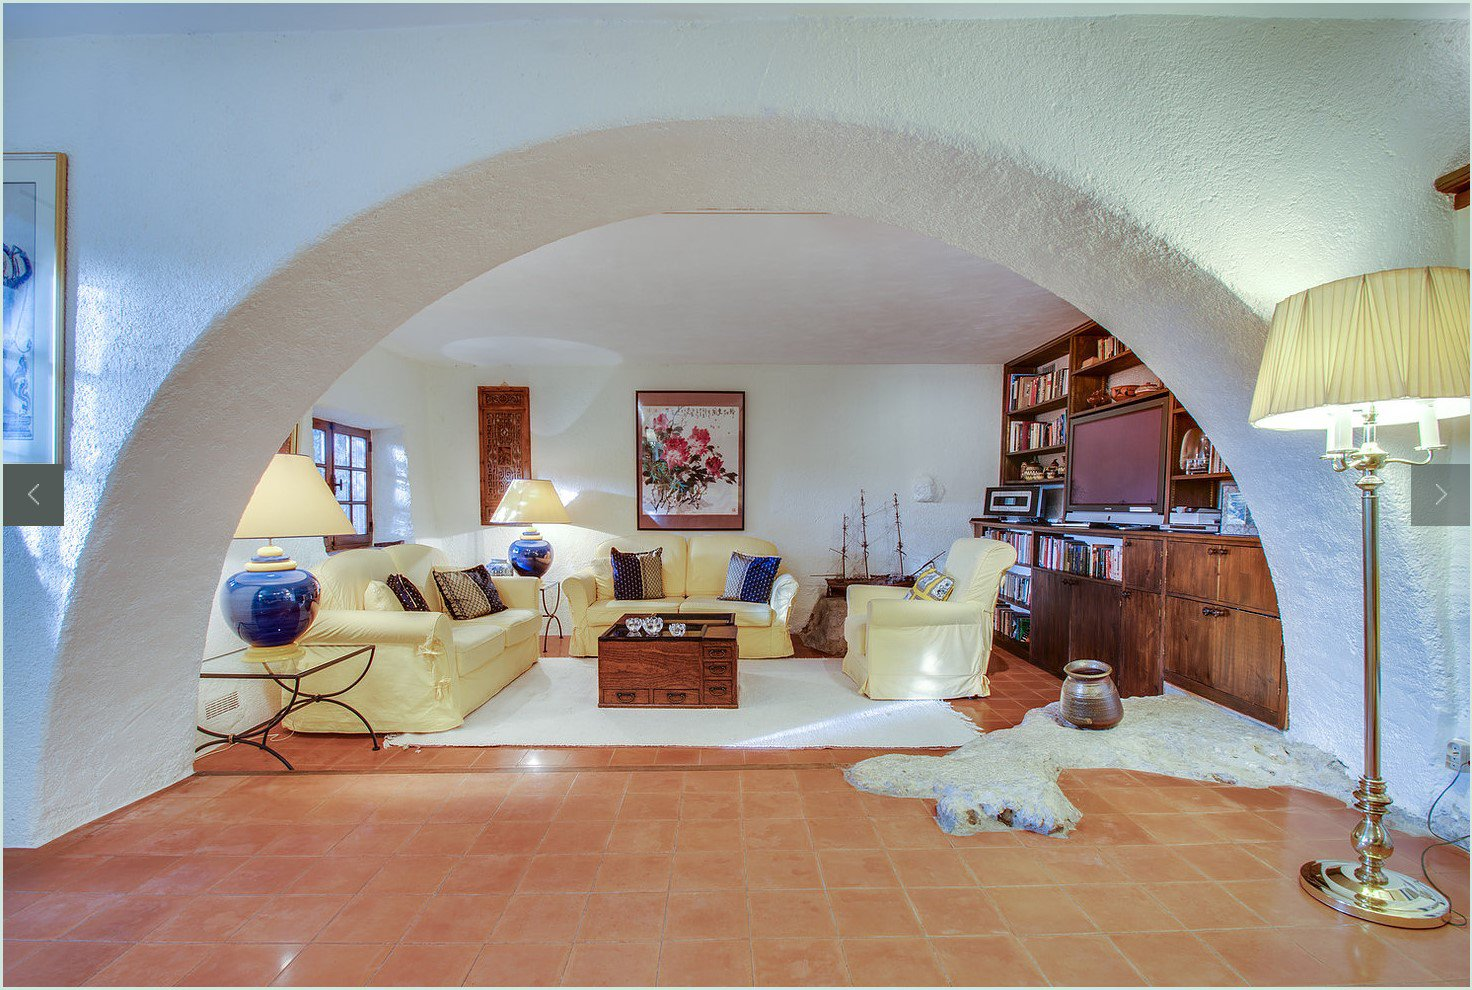 Callian Splendid Mas 16 / 17th century of 300sqm with 6000sqm of land